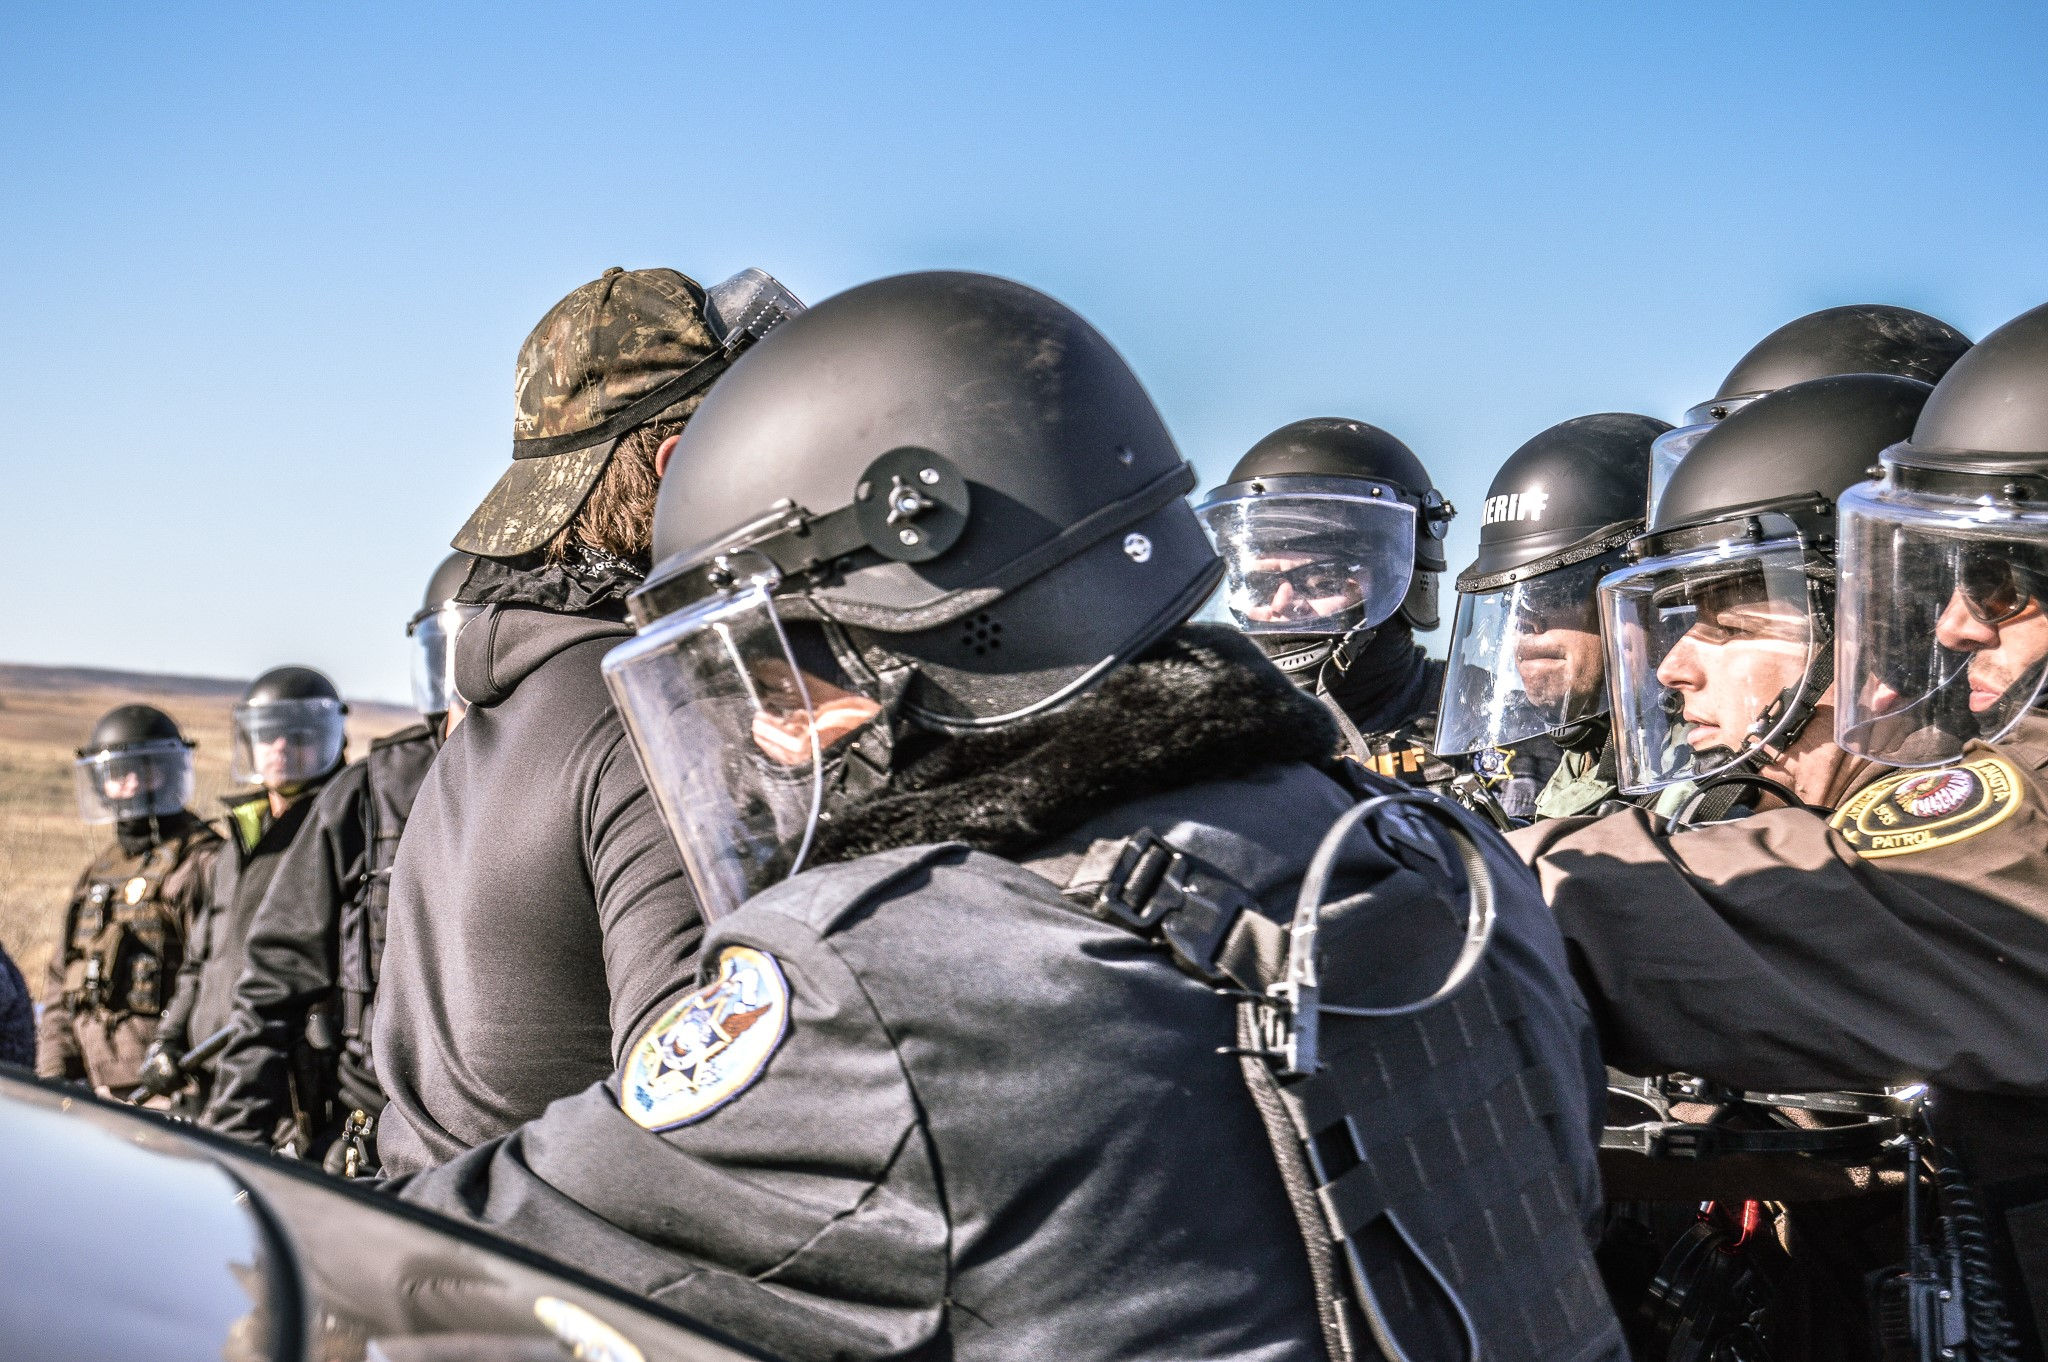 Brandon Ecoffey: South Dakota officers abuse water protectors